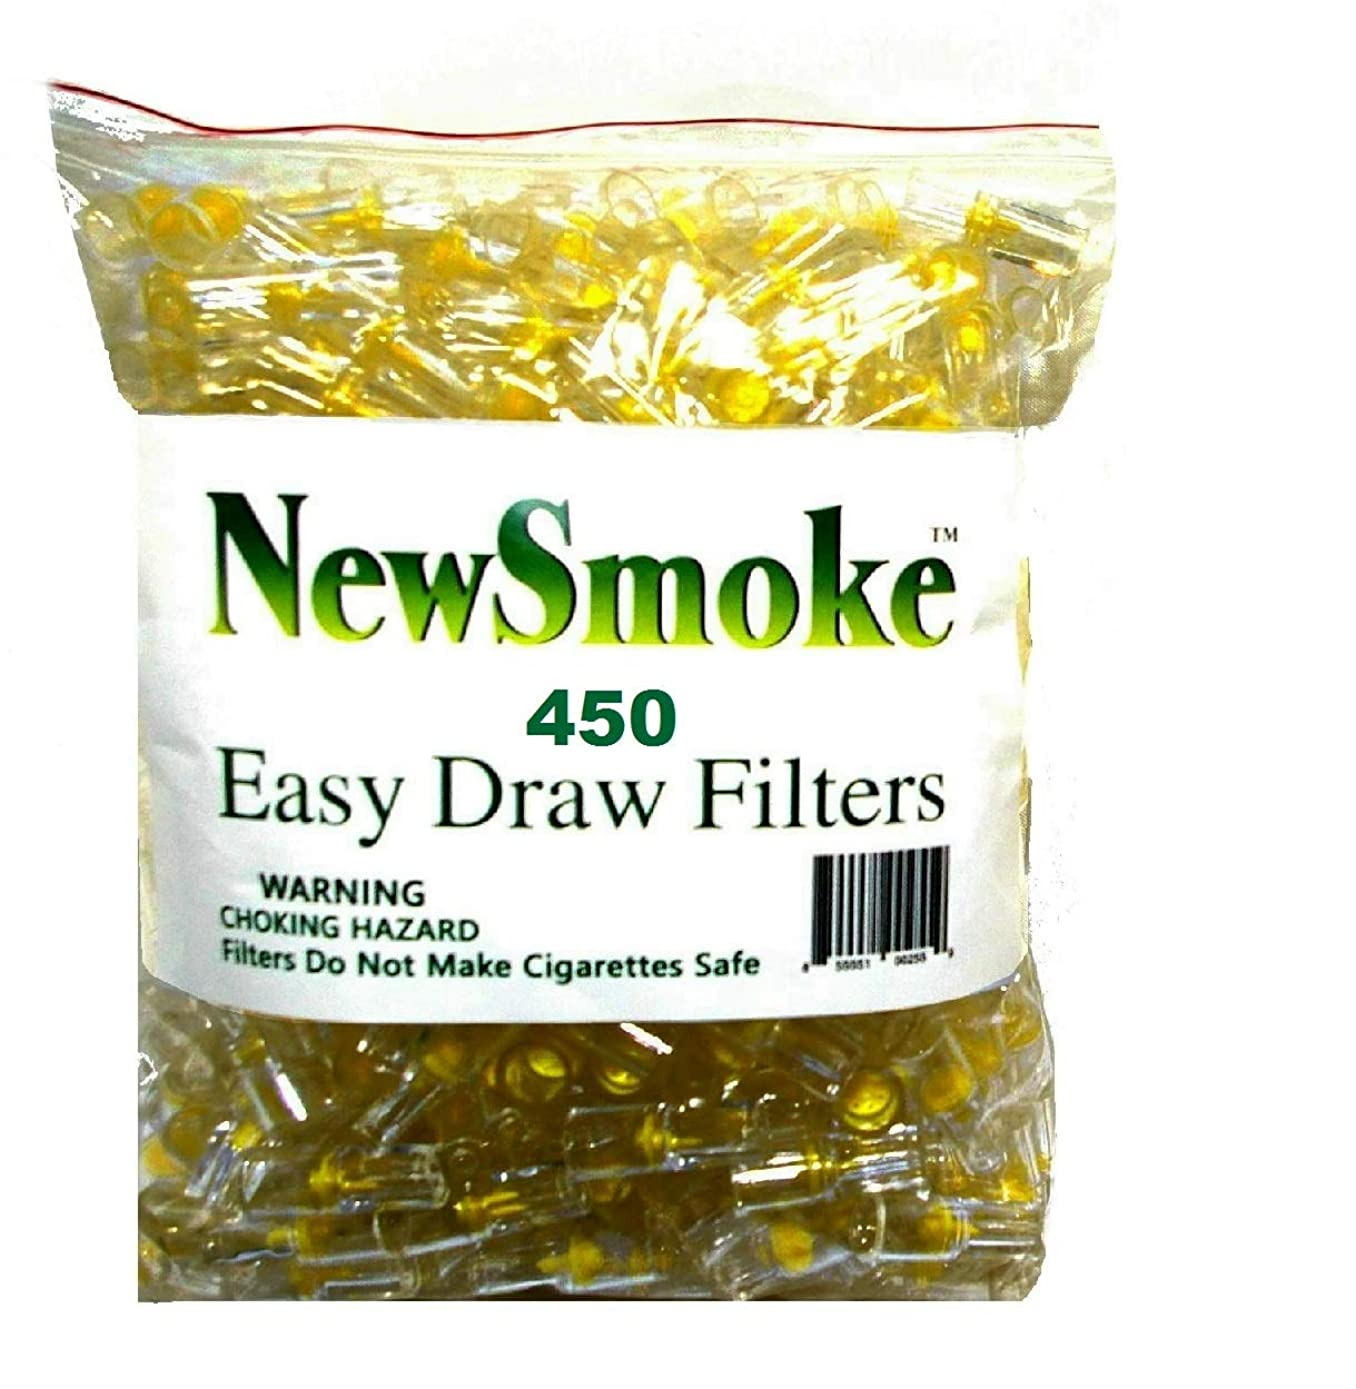 NEW SMOKE Disposable Cigarette Filters Bulk Economy Pack 300 plus 150 FREE BONUS FILTERS/Total 450 filters